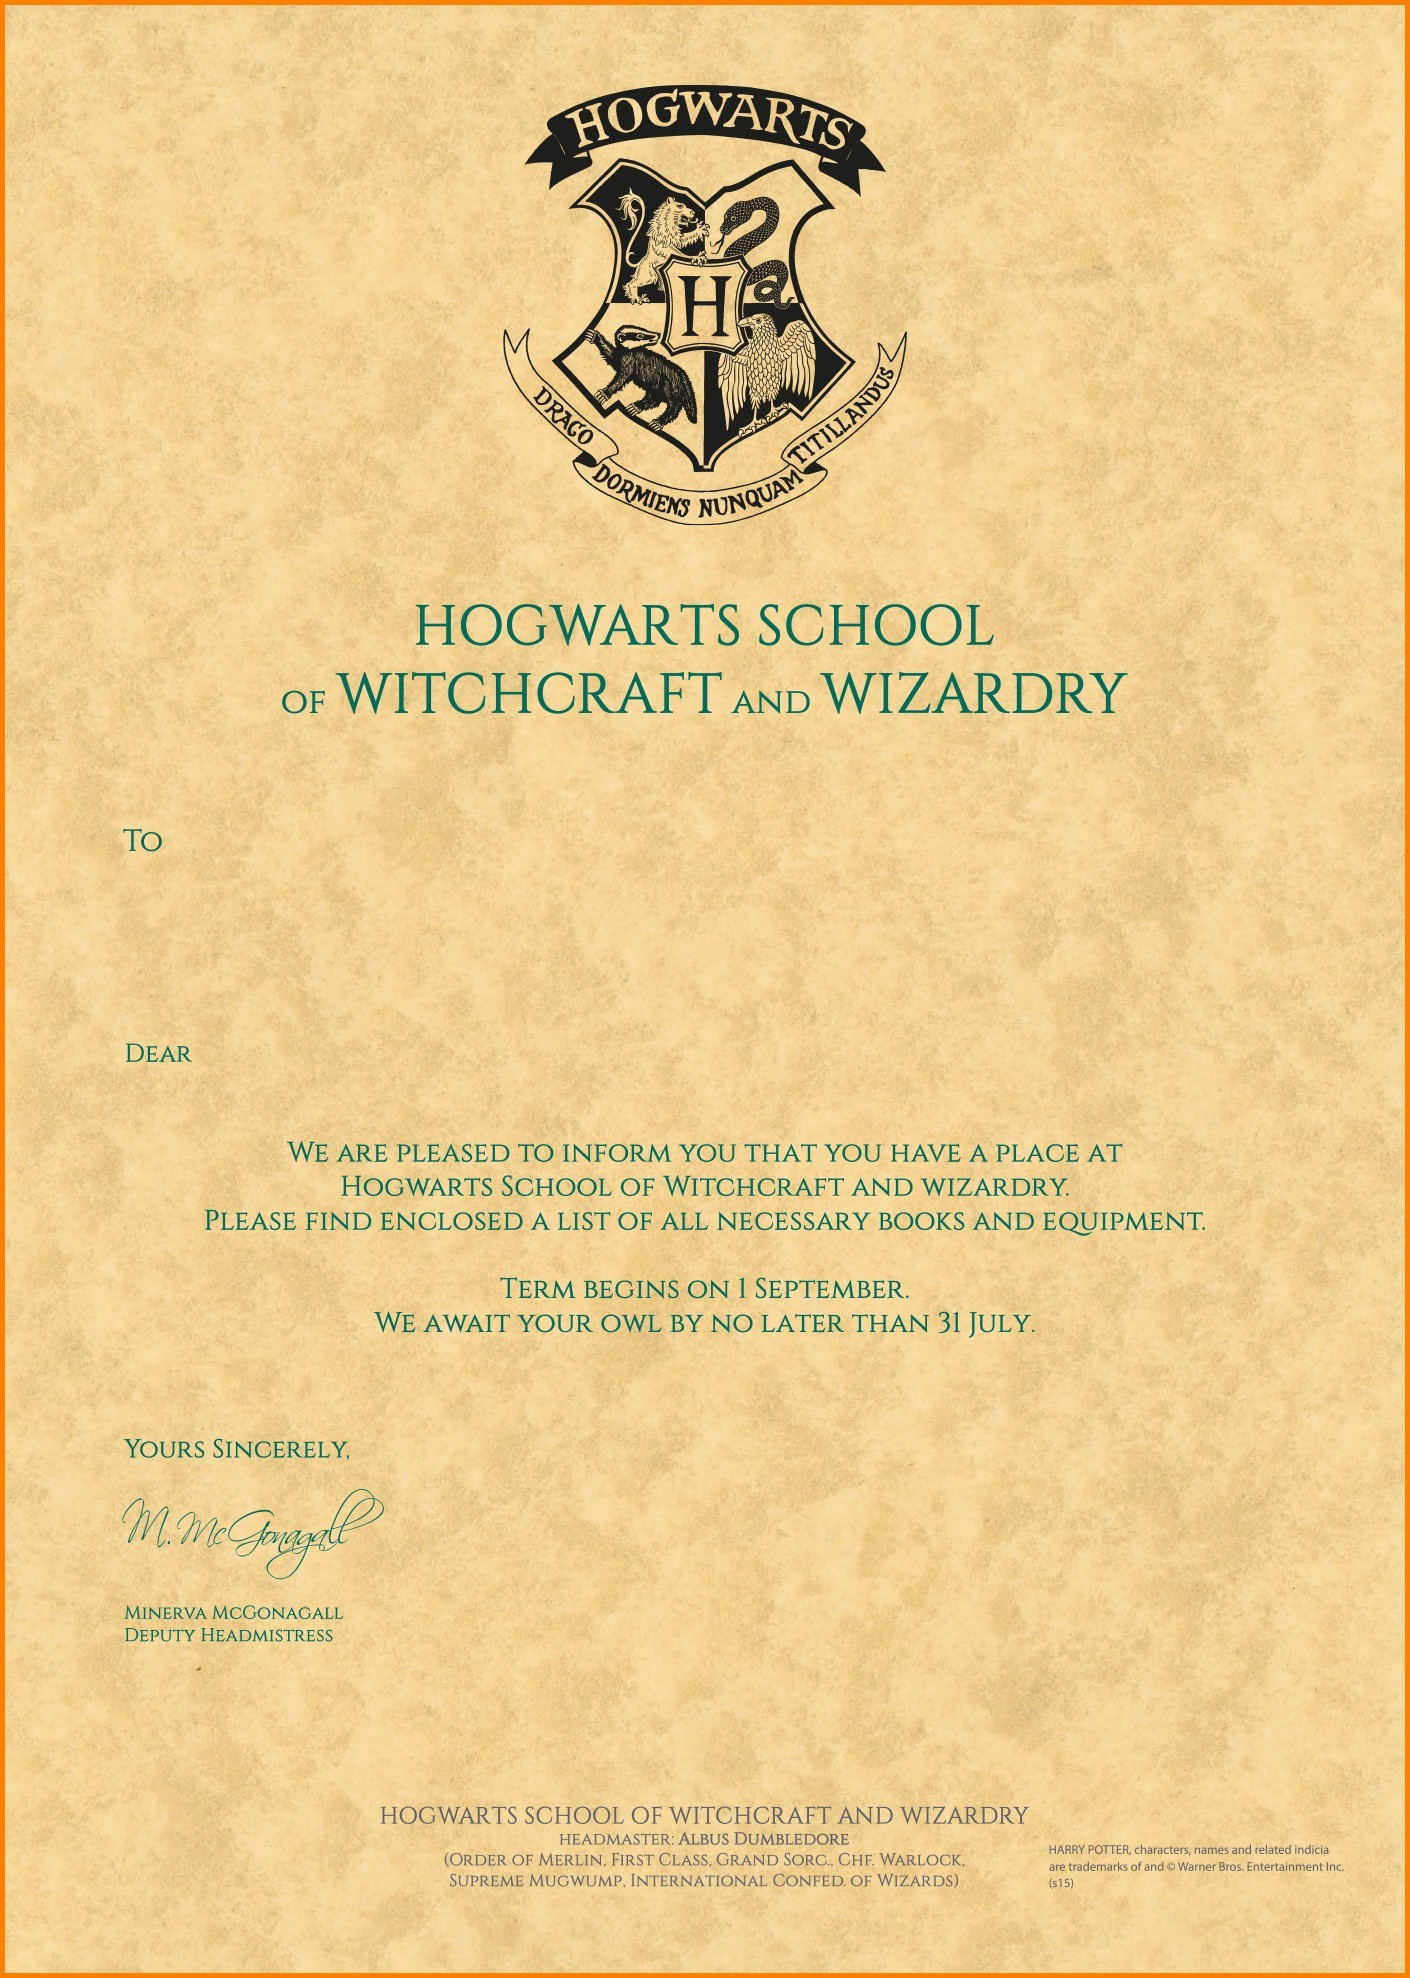 Harry Potter Letter Template - Certificate Veterinary Inspection Harry Potter Letter Template